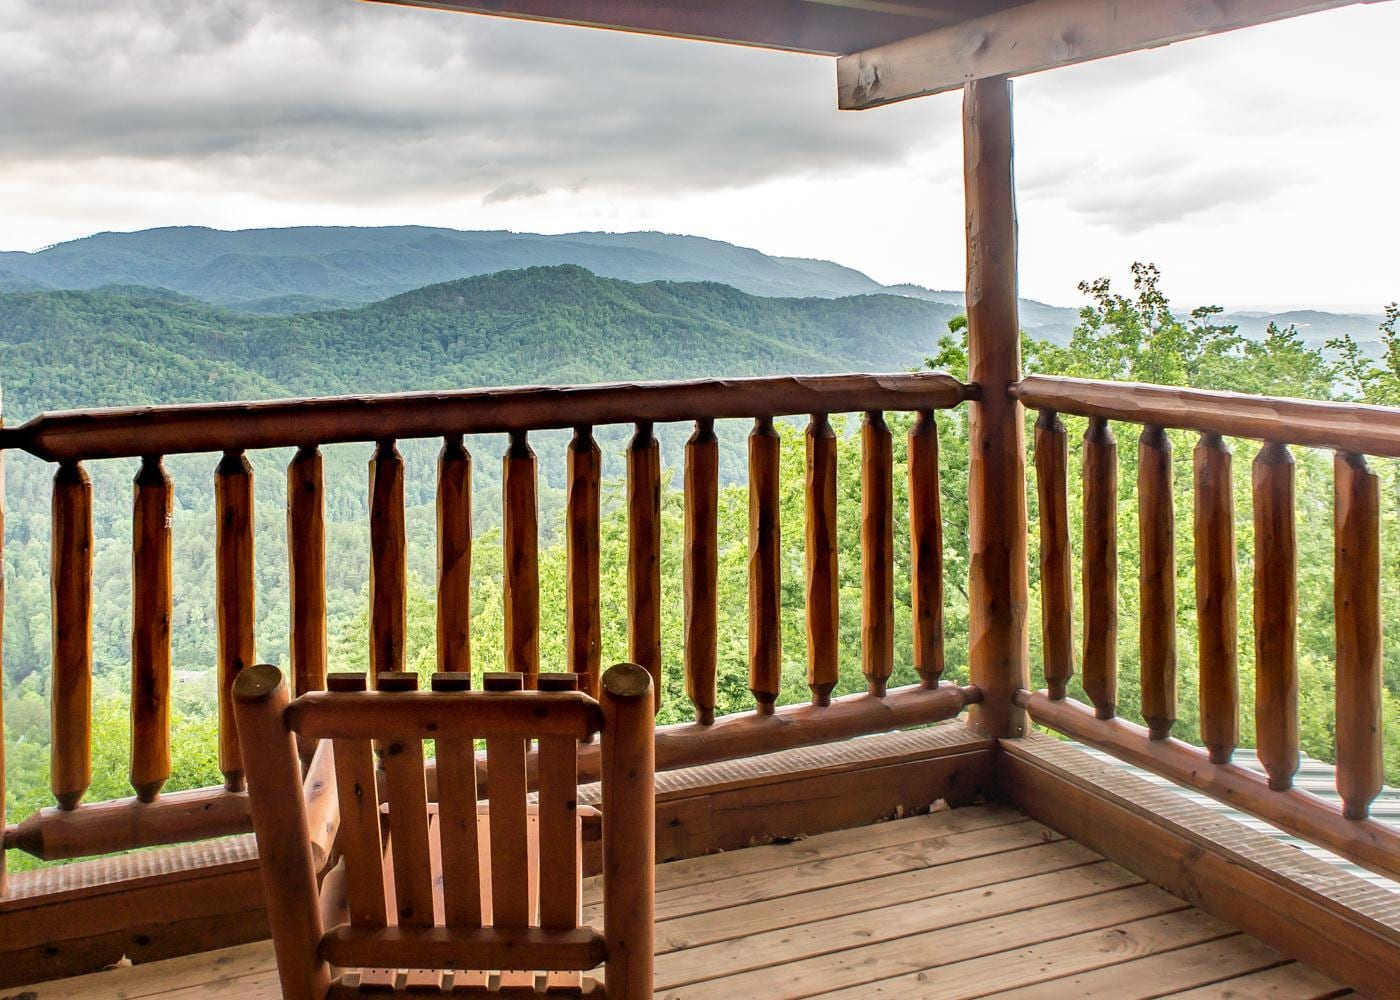 Property Image 2 - Cozy Mountainside Cabin with Hot Tub and Viewing Deck